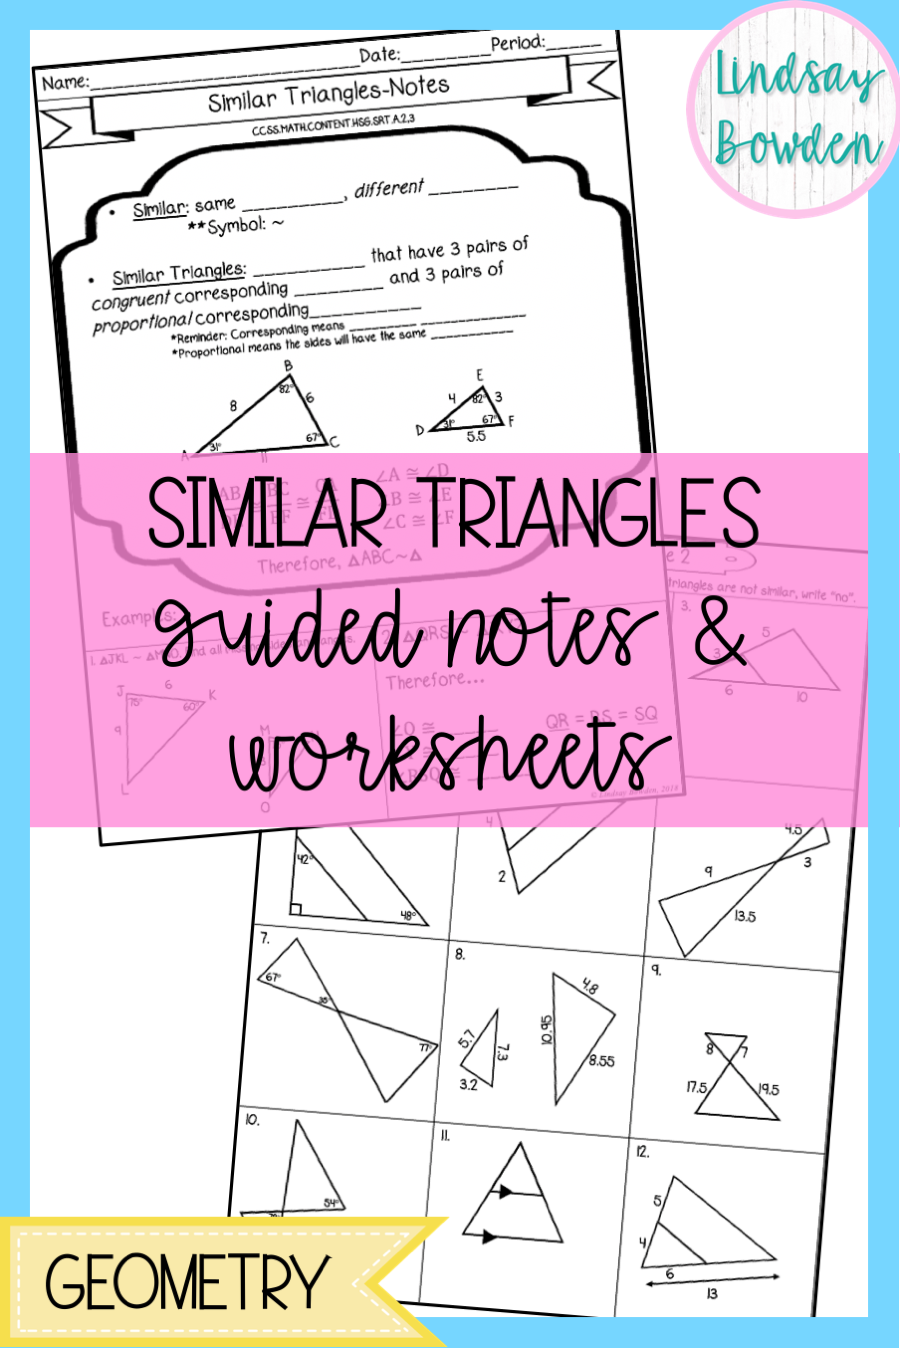 Similar Triangles Notes and Worksheets   Similar triangles [ 1350 x 900 Pixel ]